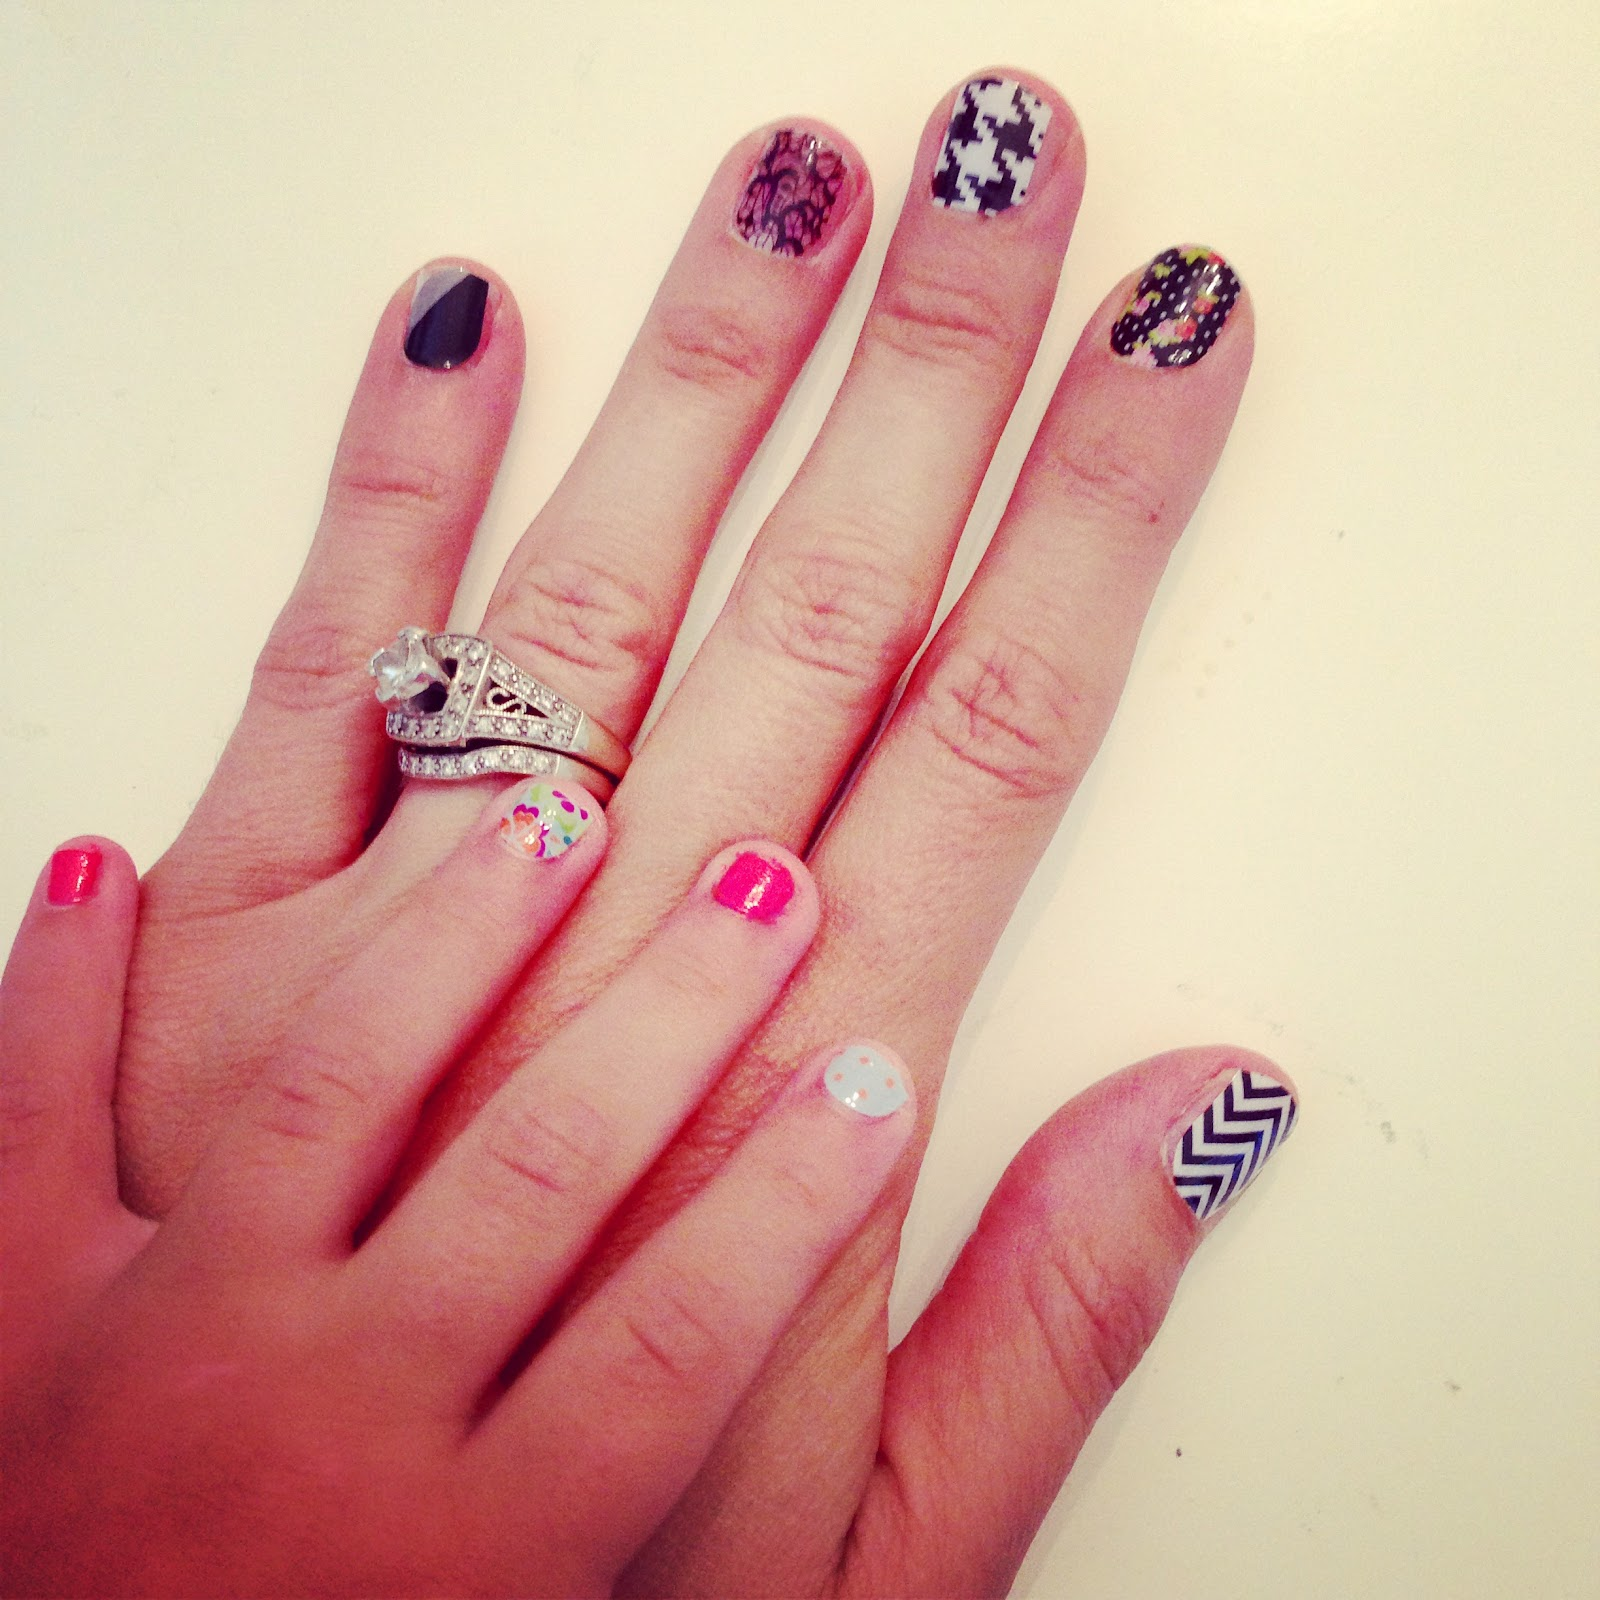 http://ramseysafley.jamberrynails.net/party/?uid=311f8ea6-9d42-4858-9db3-1c5c71533e5f